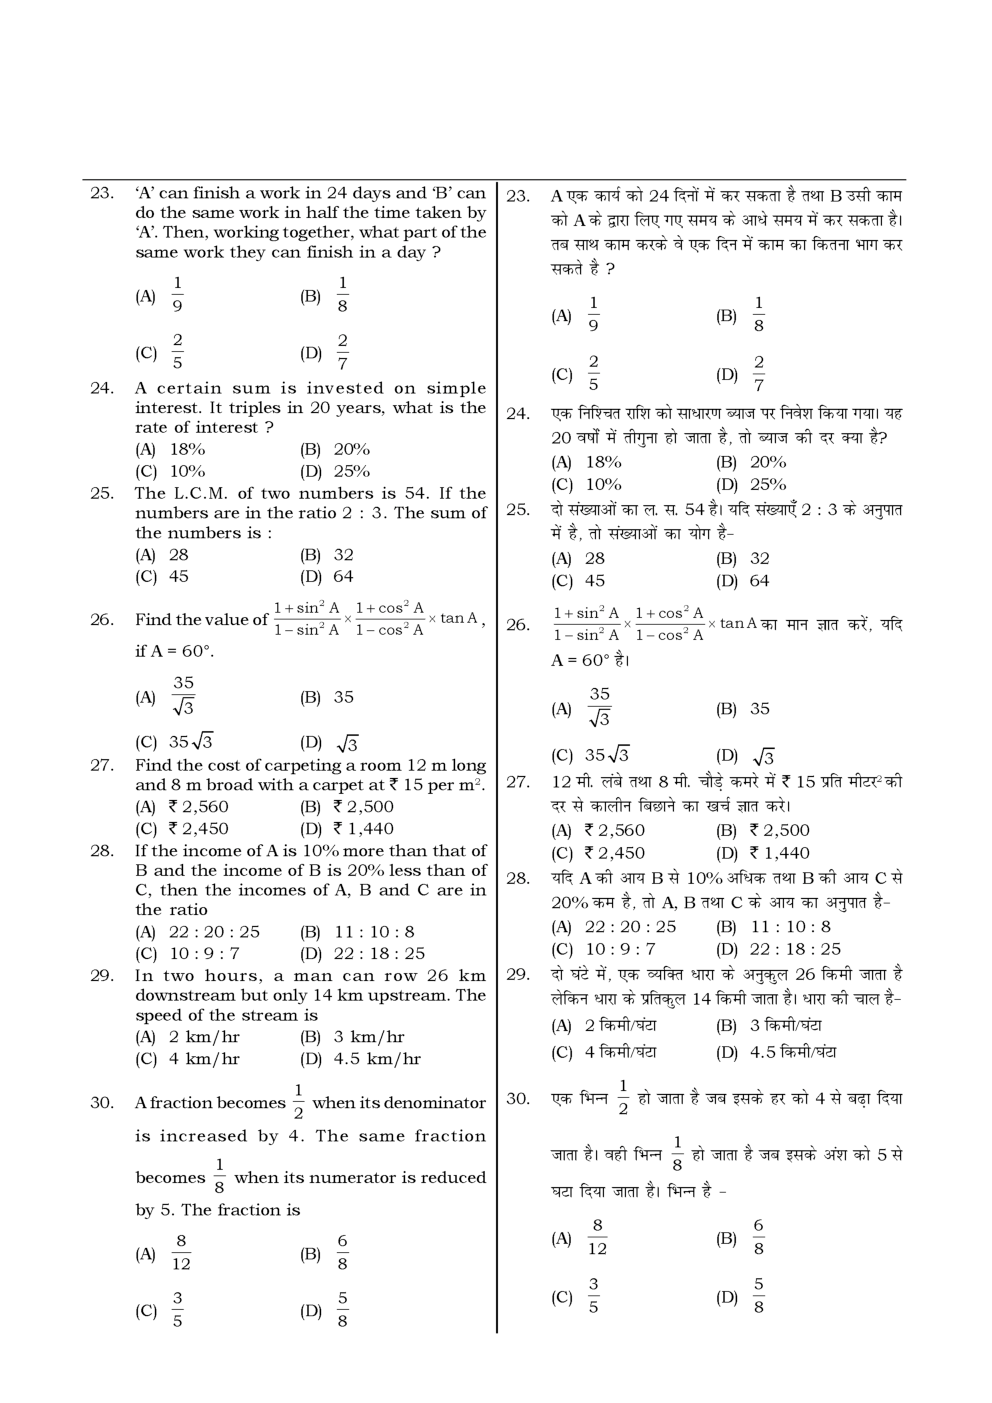 HSSC  Sample Paper-18 - Page 4